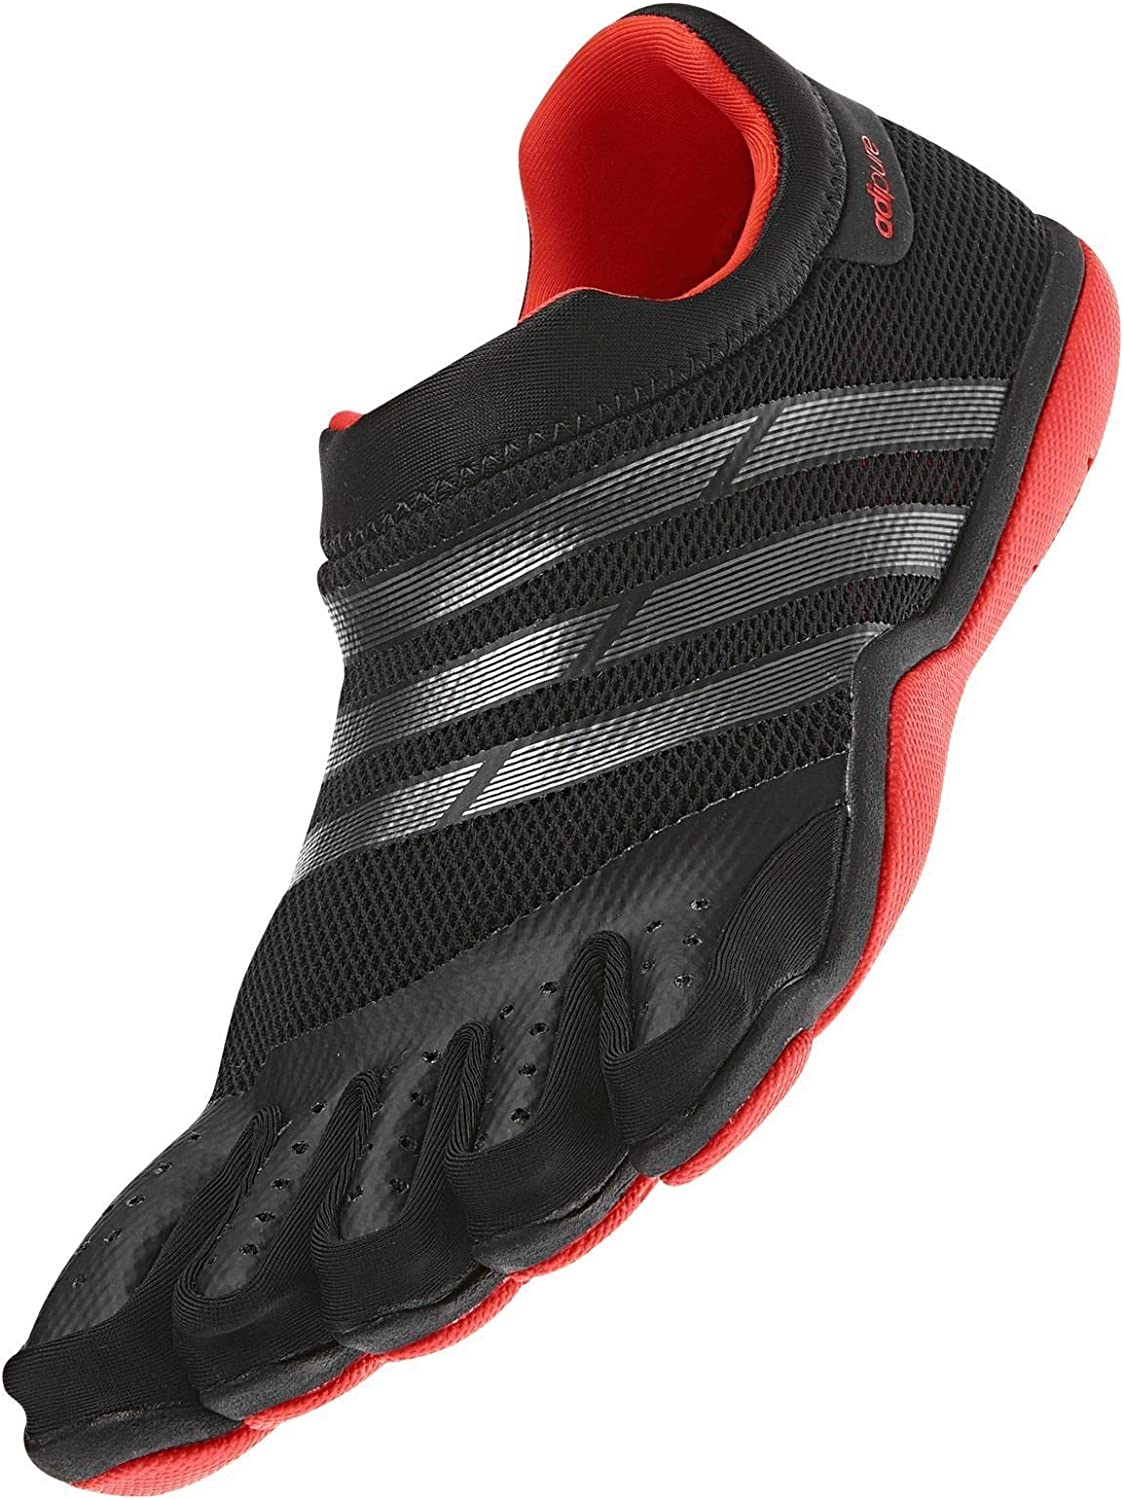 Estrecho de Bering servilleta Enfadarse  Amazon.com | Adidas Adipure Trainer Ortholite Black Water Grip Barefoot  Skeleton Toe Men's Shoes Size 11.5 | Running